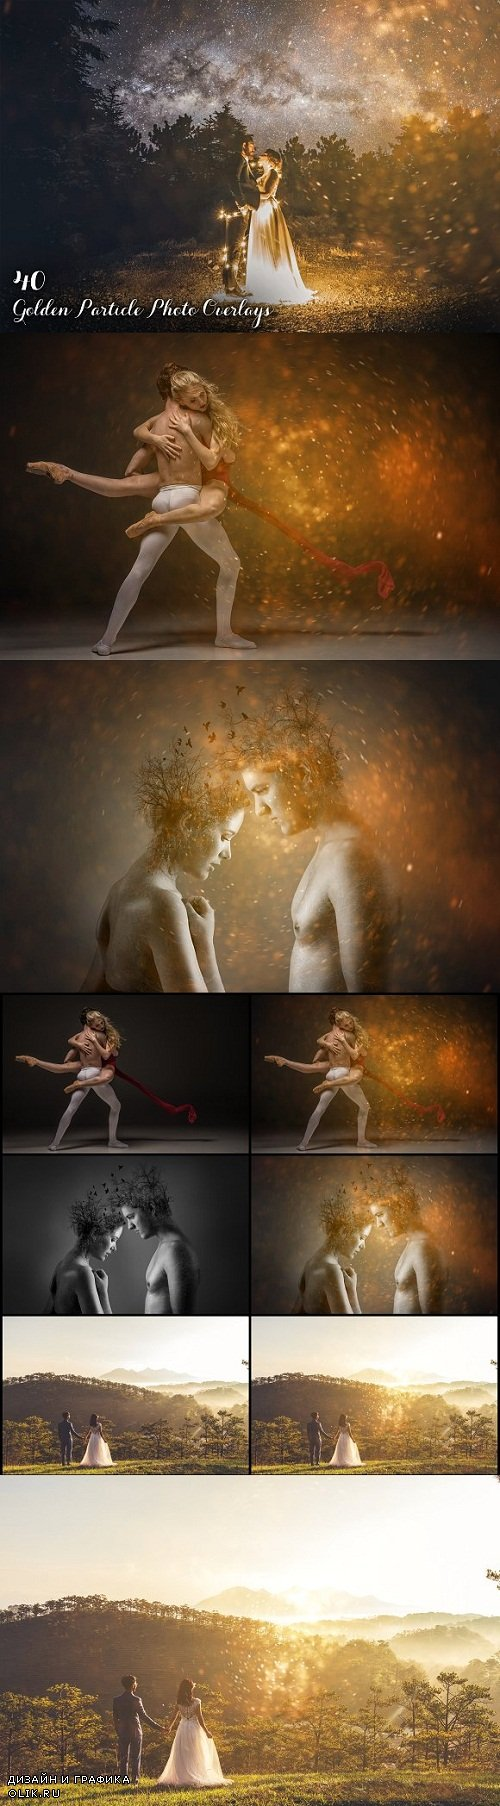 40 Golden Particle Photo Overlays 3499410